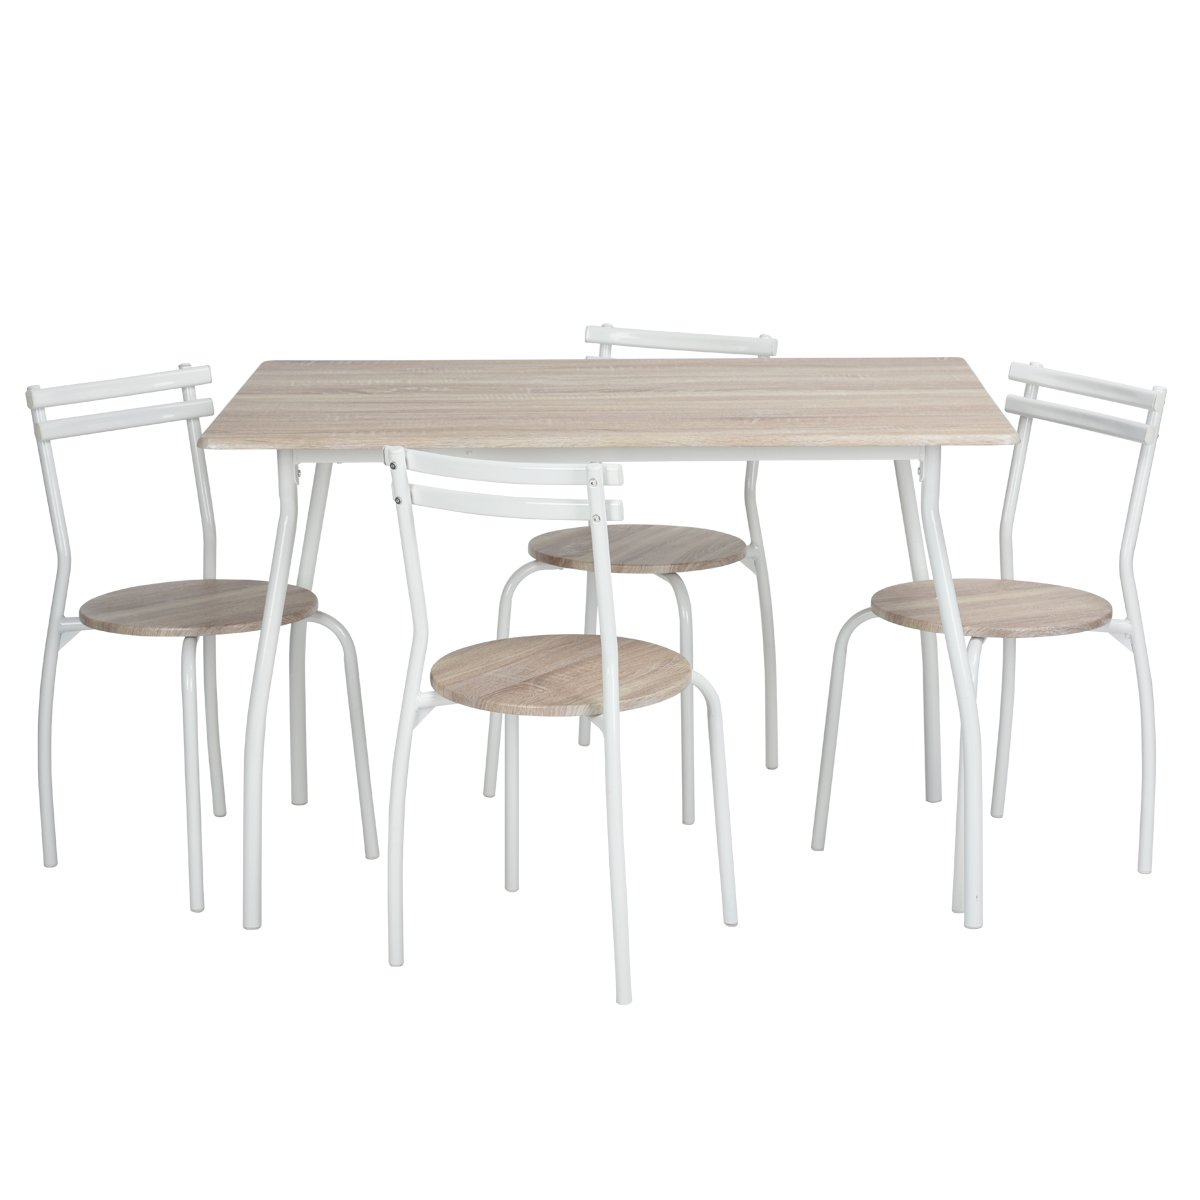 HouseinBox 5pcs Dining Room Set Table Kitchen Furniture Rectangle Table Curved Metal Legs Bottle Round Seat, Beech